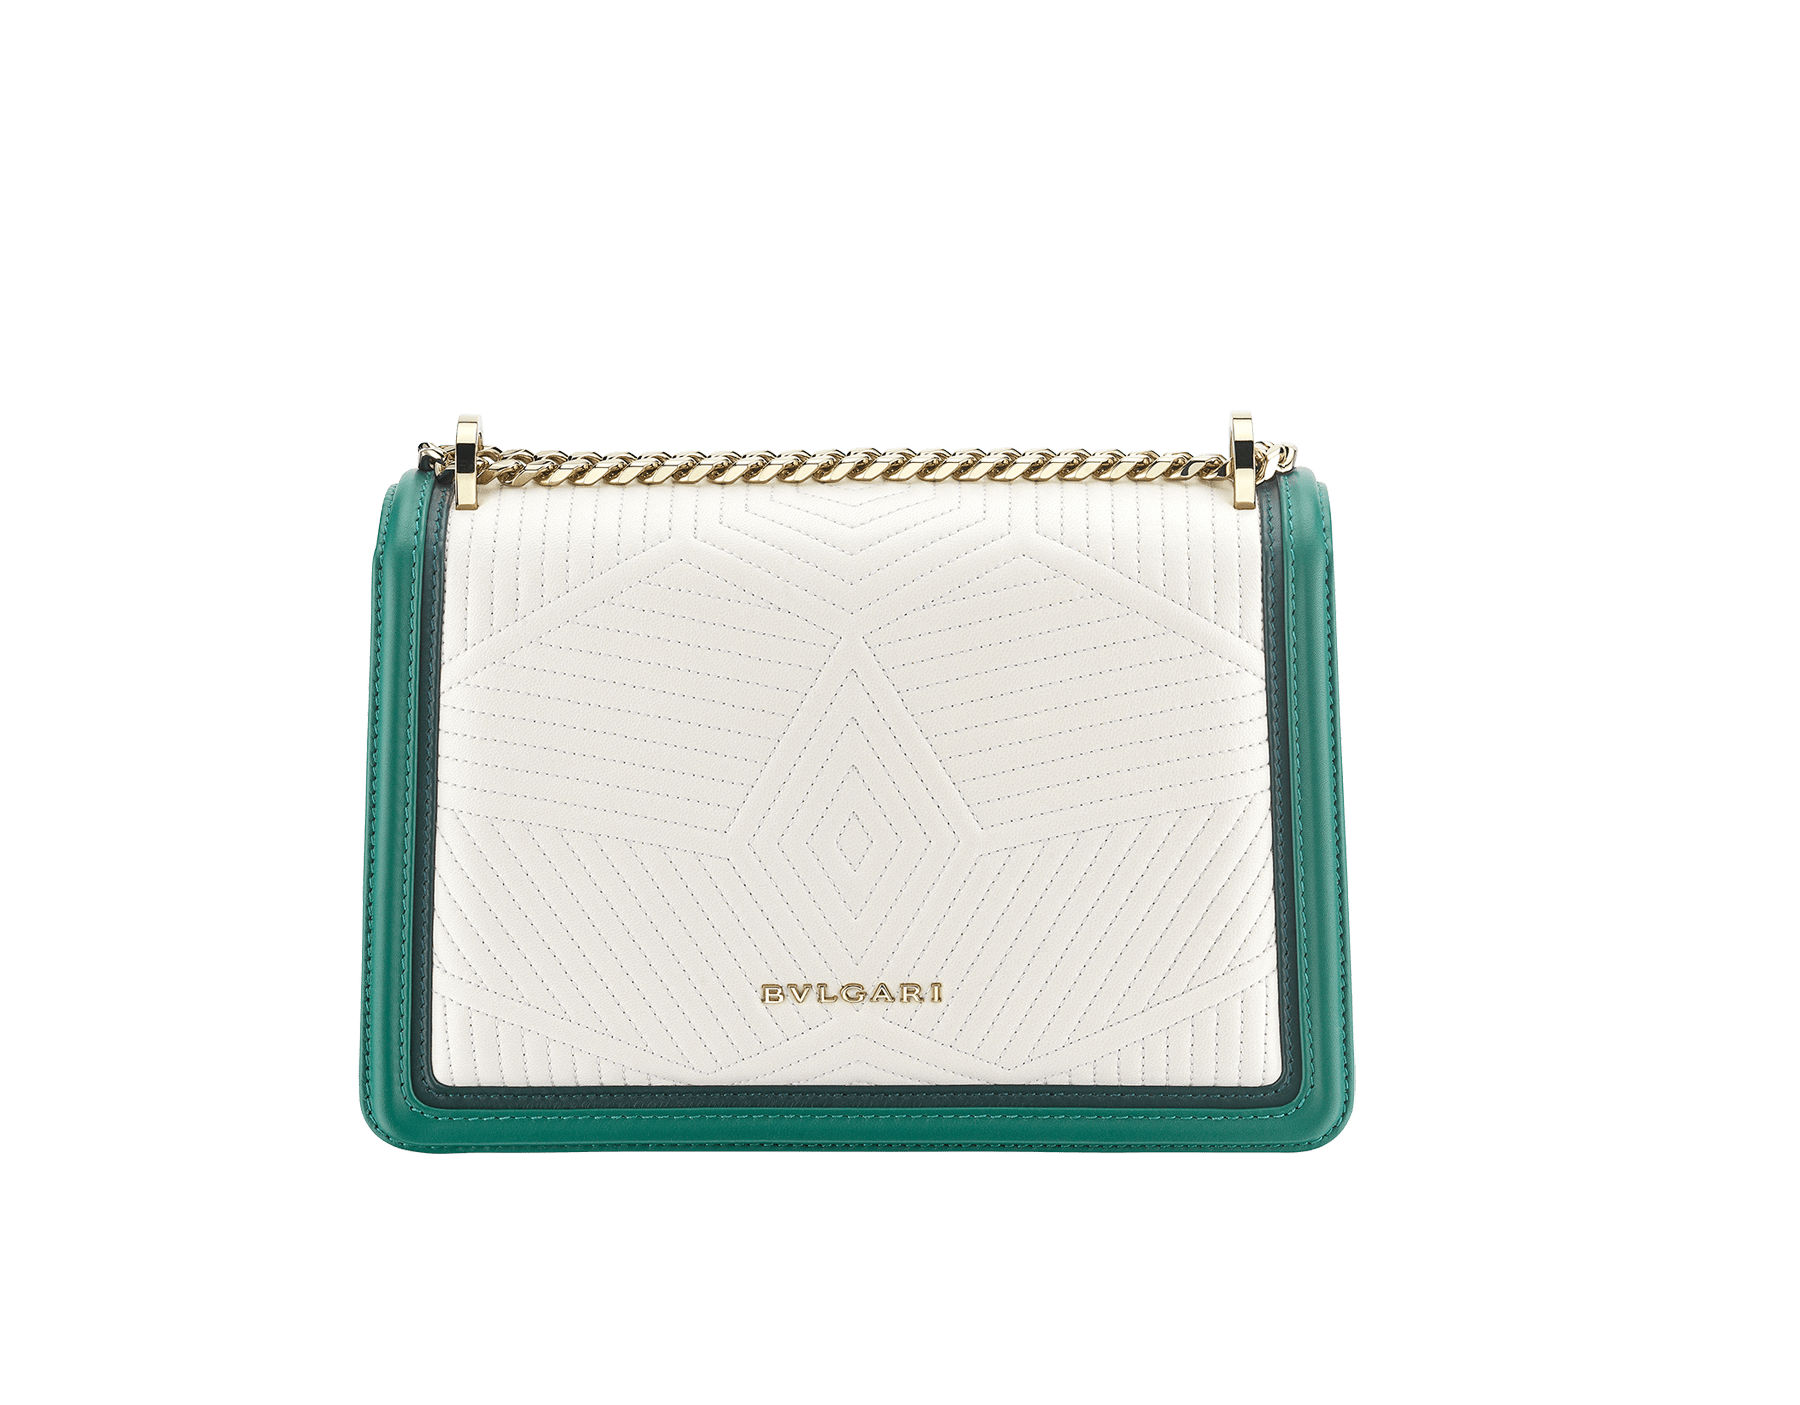 """Serpenti Diamond Blast"" shoulder bag in mimetic jade quilted nappa leather and mimetic jade smooth calf leather frames. Iconic snakehead closure in light gold plated brass enriched with matte black and shiny mimetic jade enamel and black onyx eyes. 922-FQDf image 3"